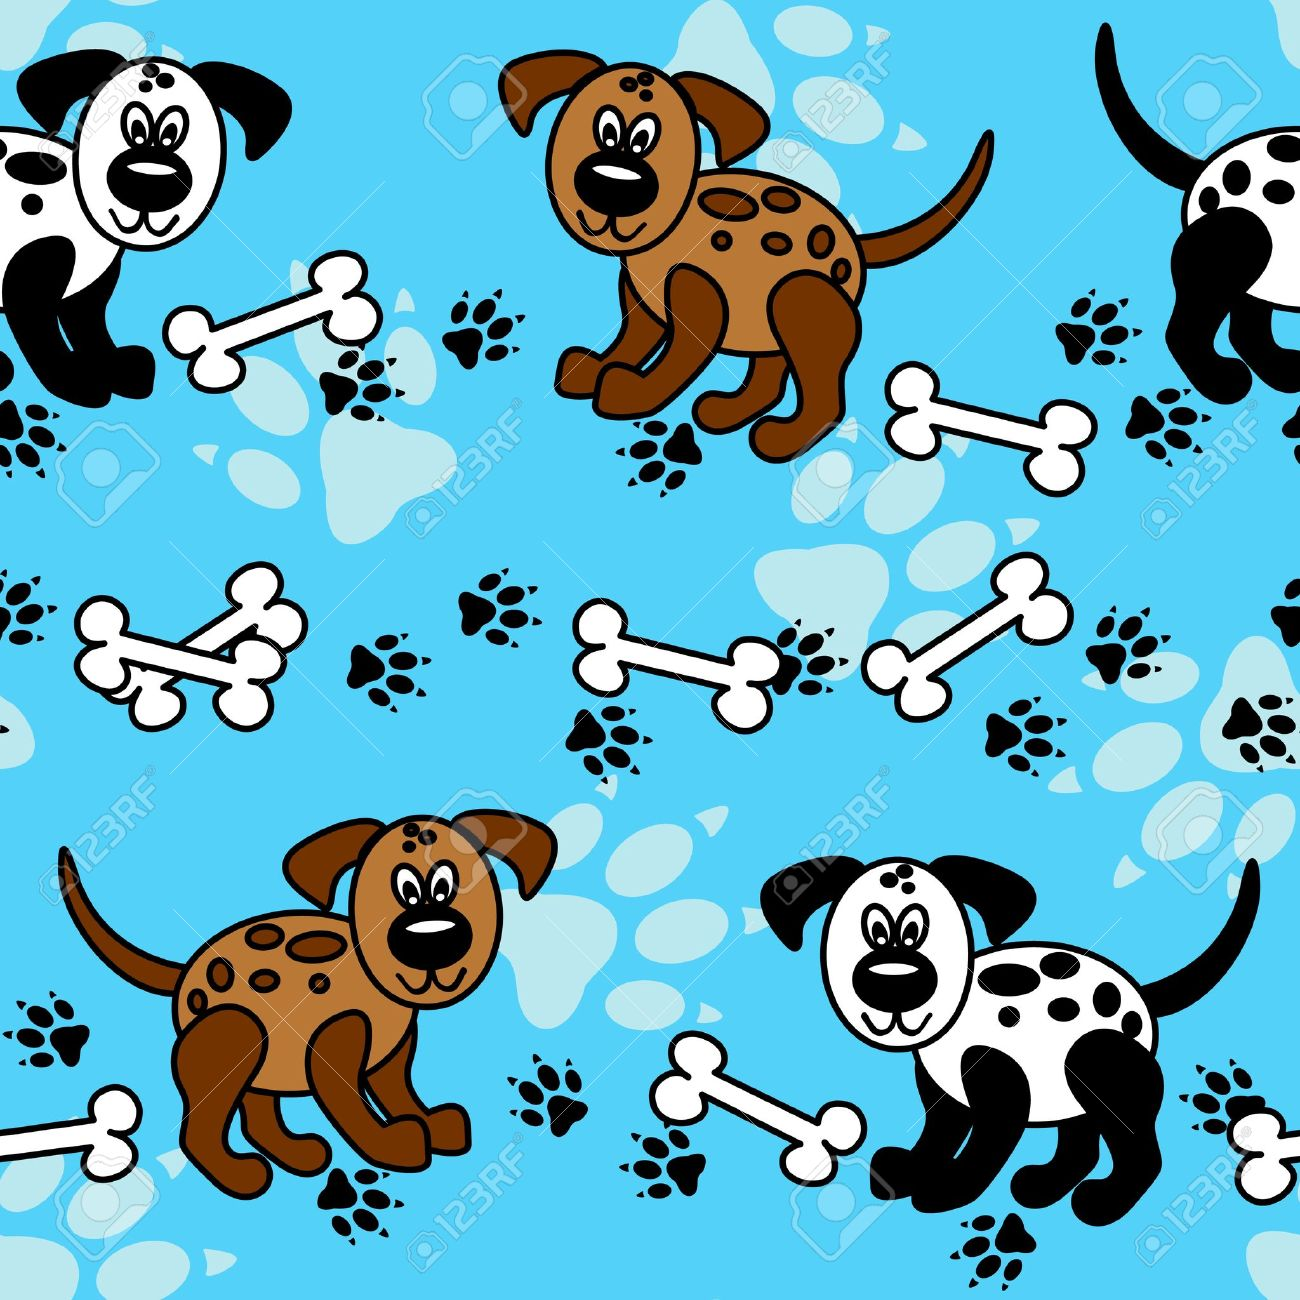 Cute And Fun Spotted Cartoon Dogs With Paw Prints And Bones That